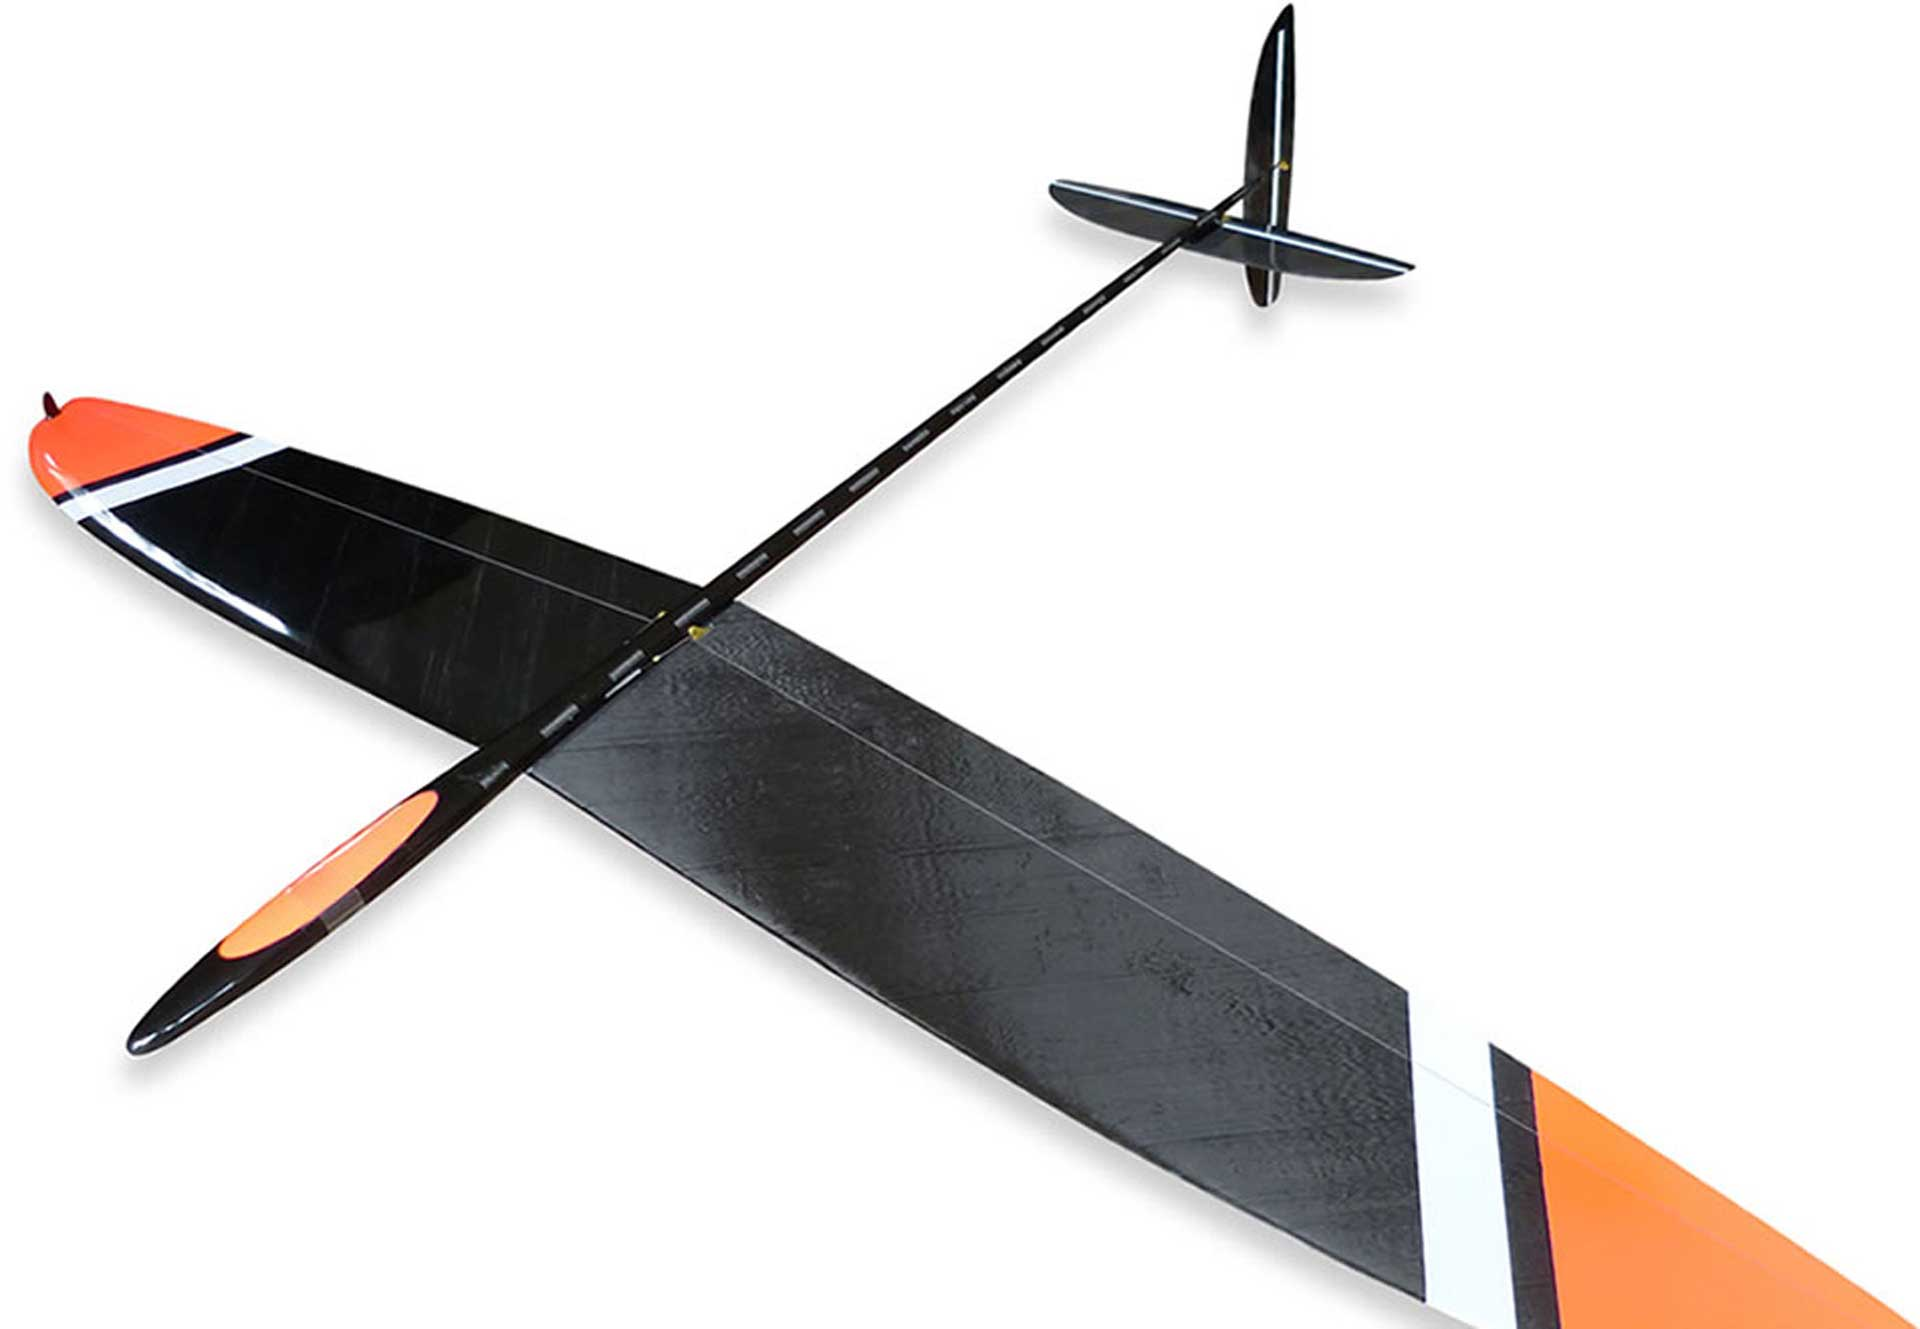 TOMAHAWK AVIATION ONEFIFTY F3K DLG 1,5M ARF FULL-CARBON